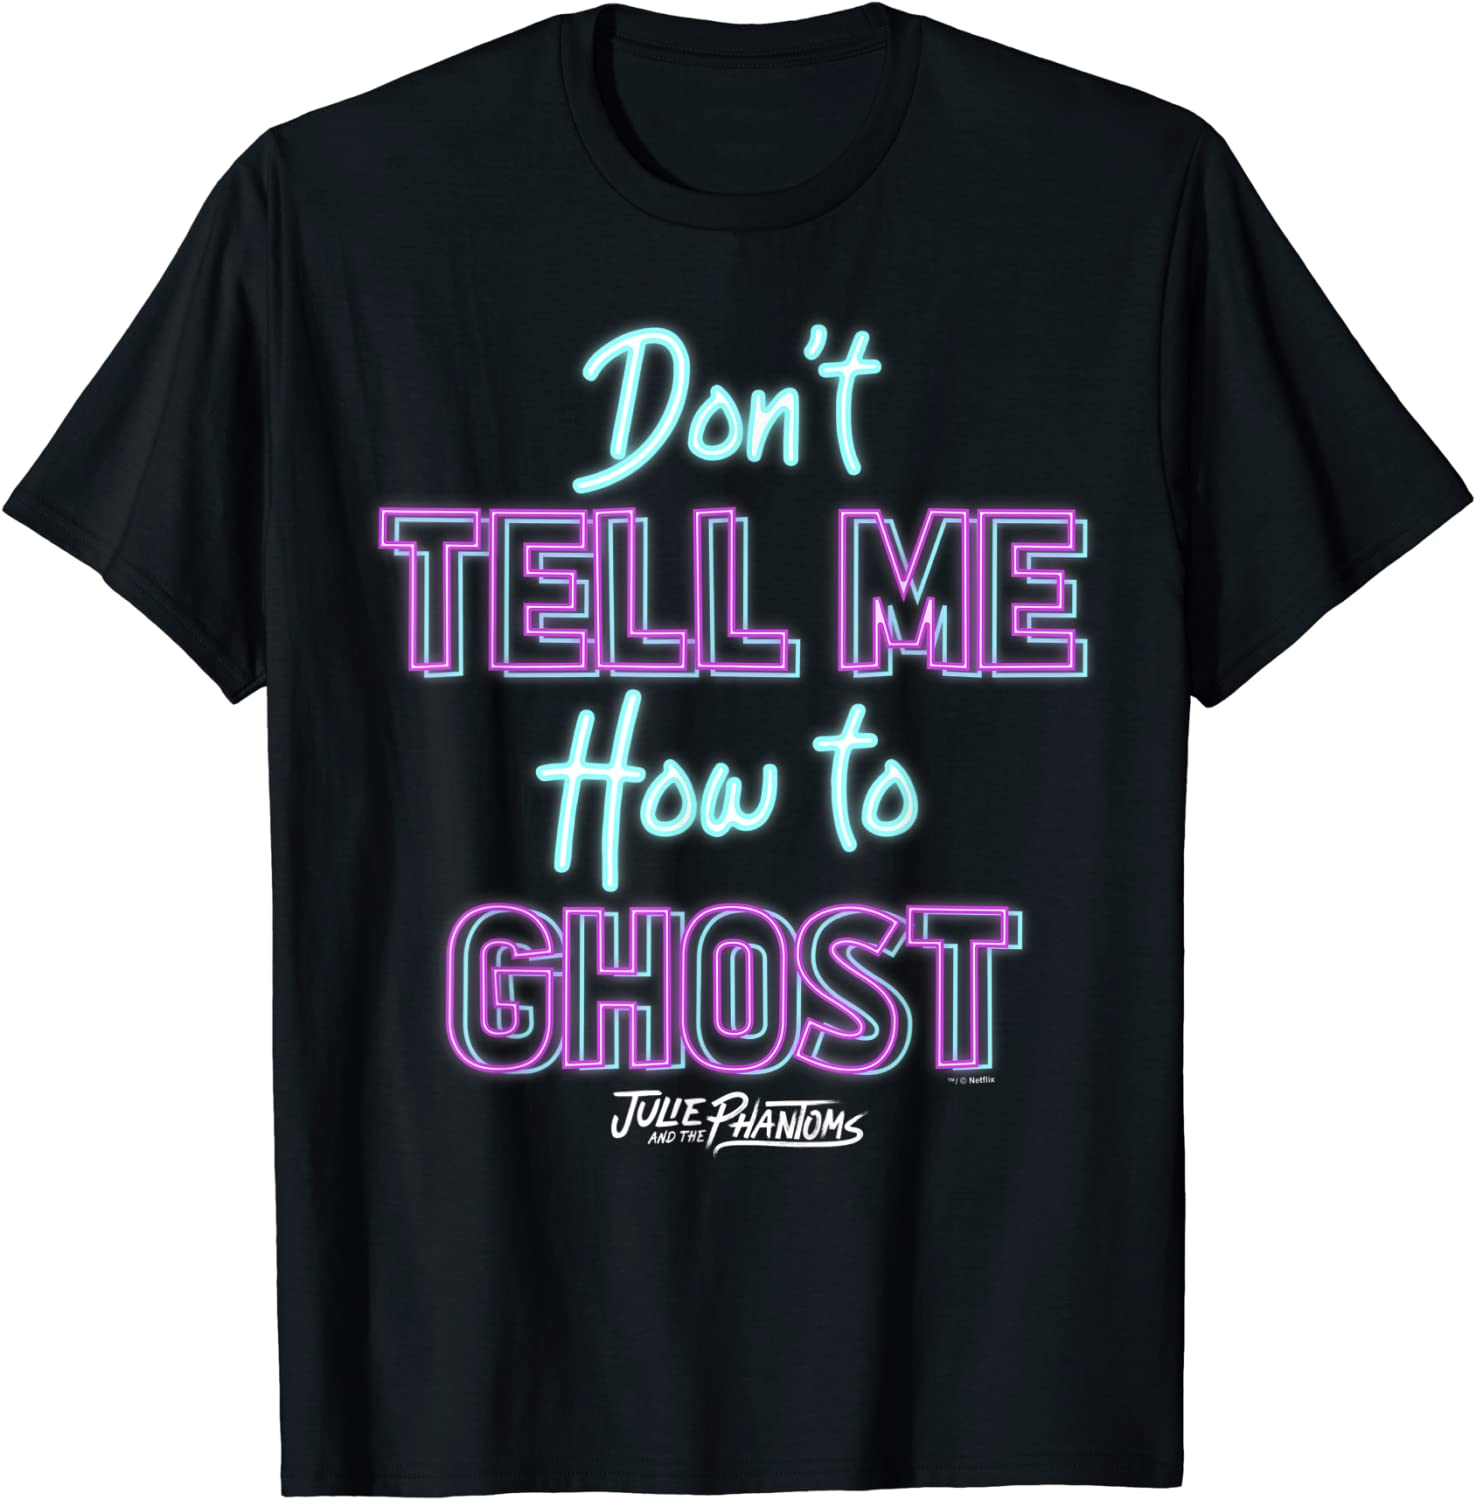 Julie And The Phantoms Don't 100% quality Inventory cleanup selling sale warranty Tell How Me To Ghost T-Shirt